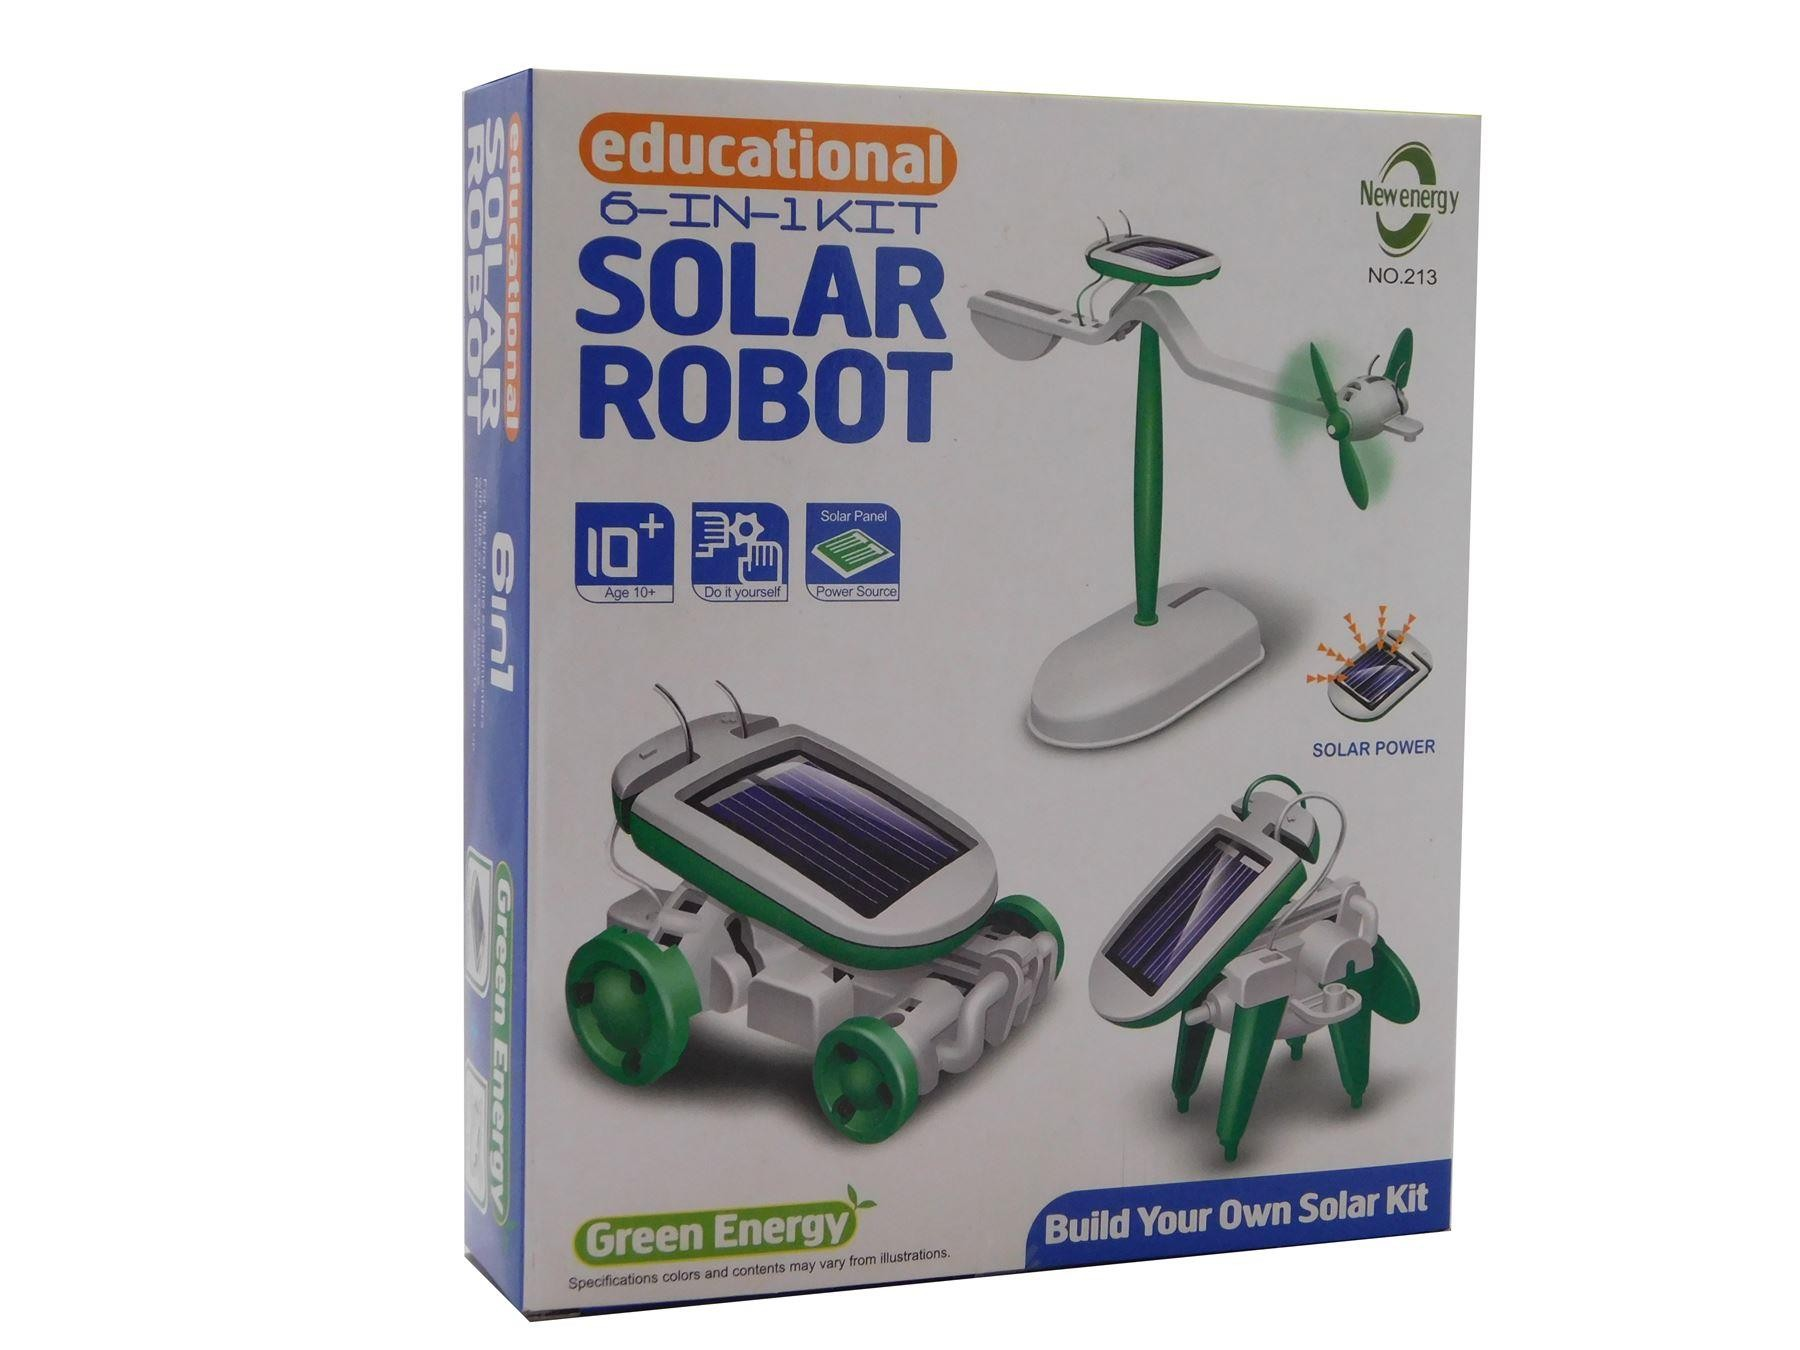 6 In 1 Educational Solar Robot Kit Plane Windmill Air boat Puppy car